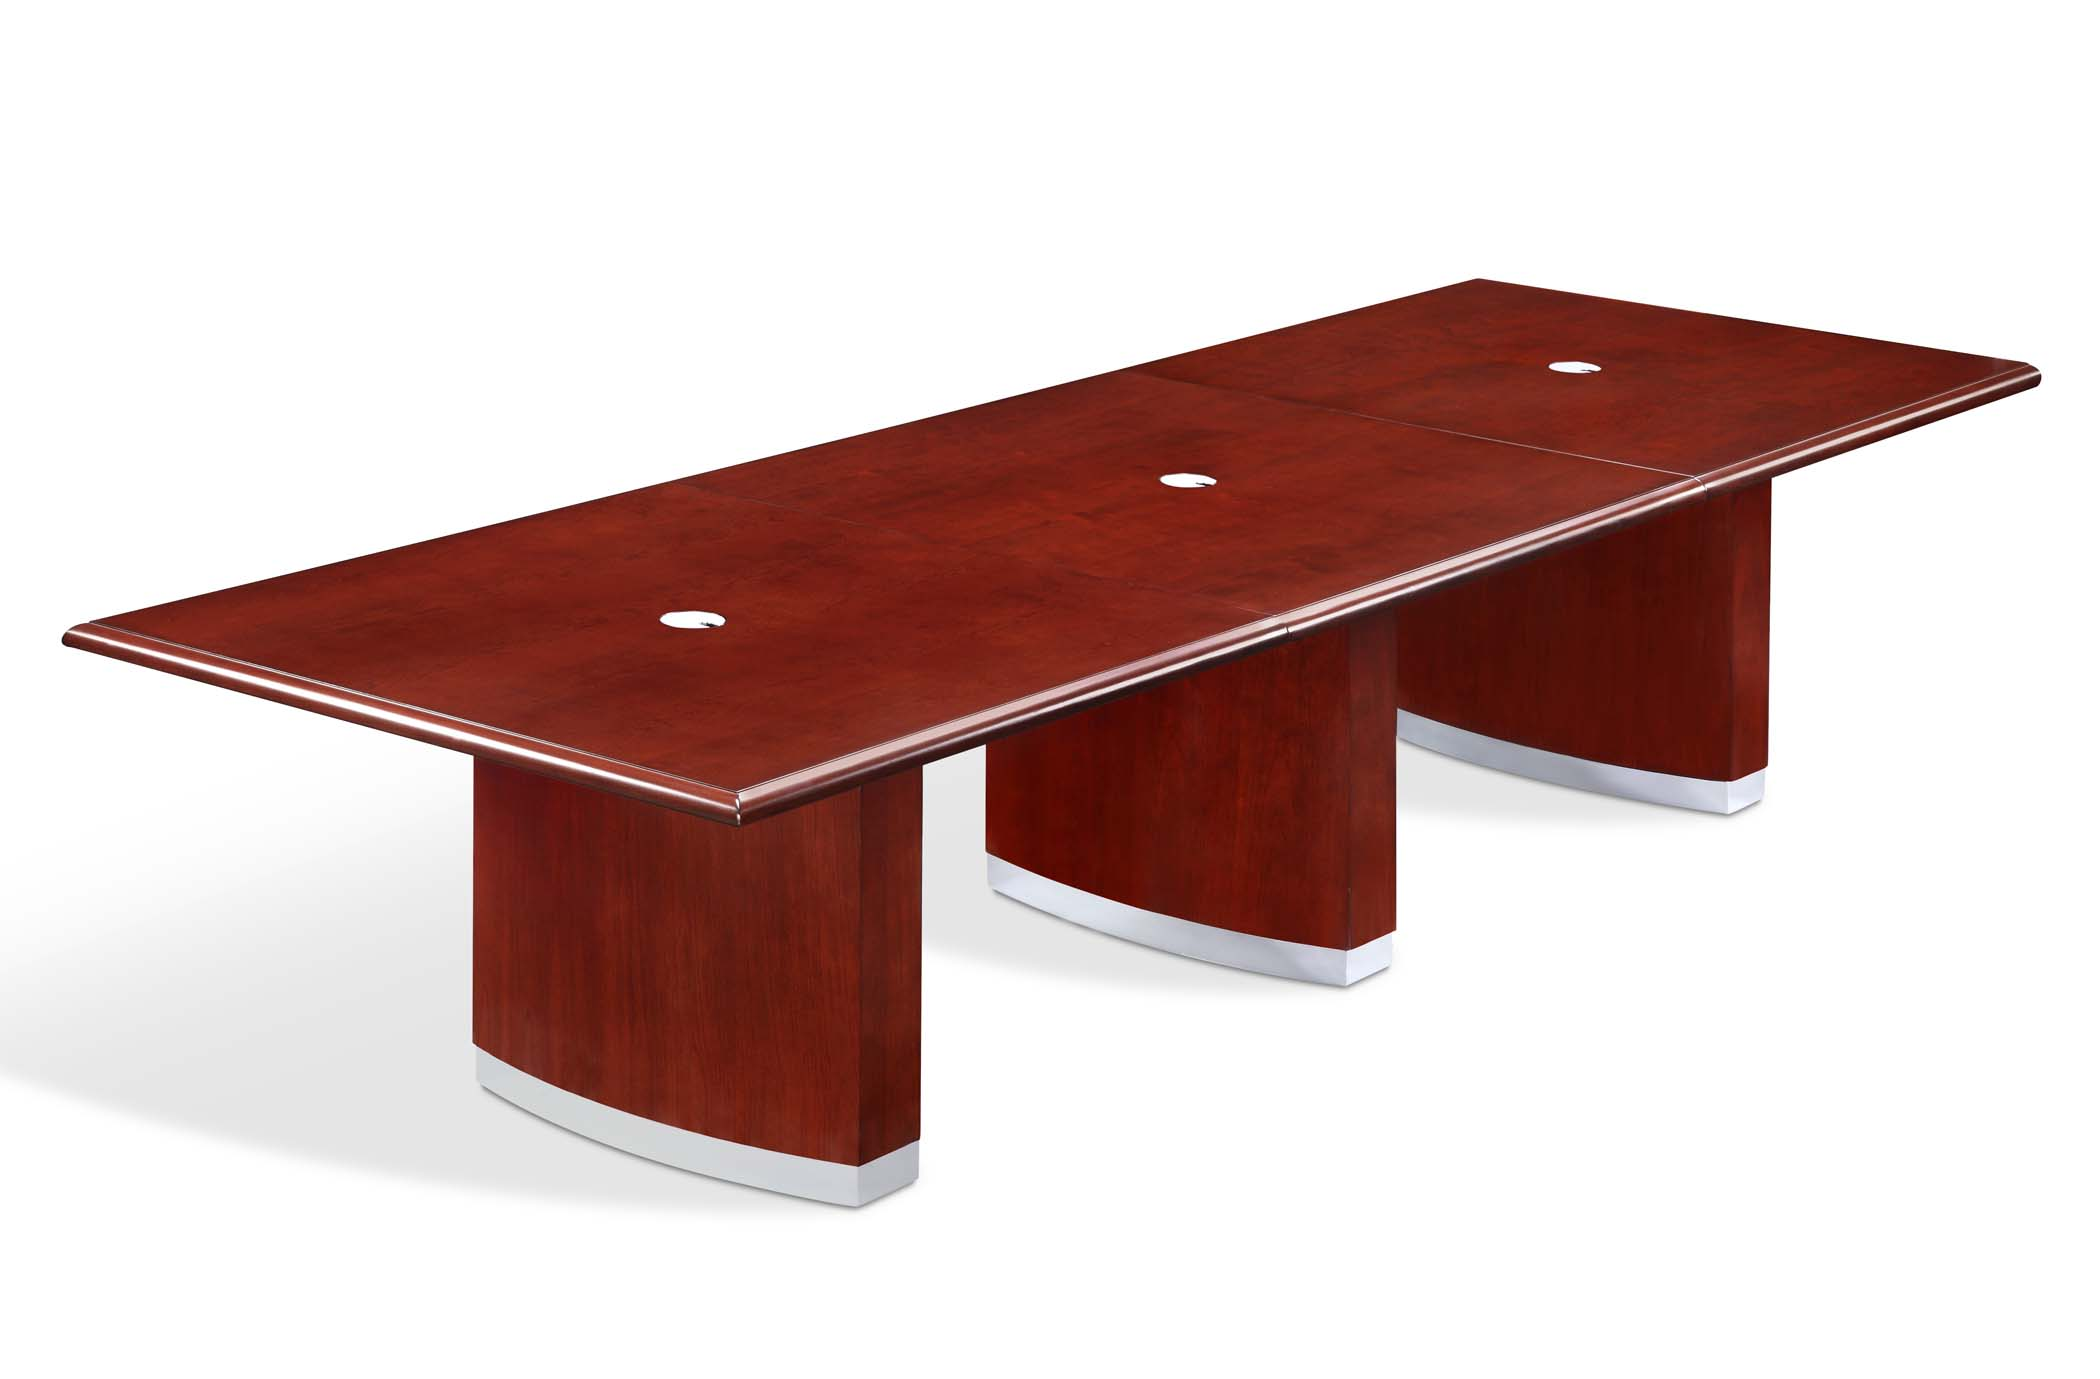 WoW DMI Flexsteel Summit Conference Tables Enhance Your Meeting Room - Conference room table grommets